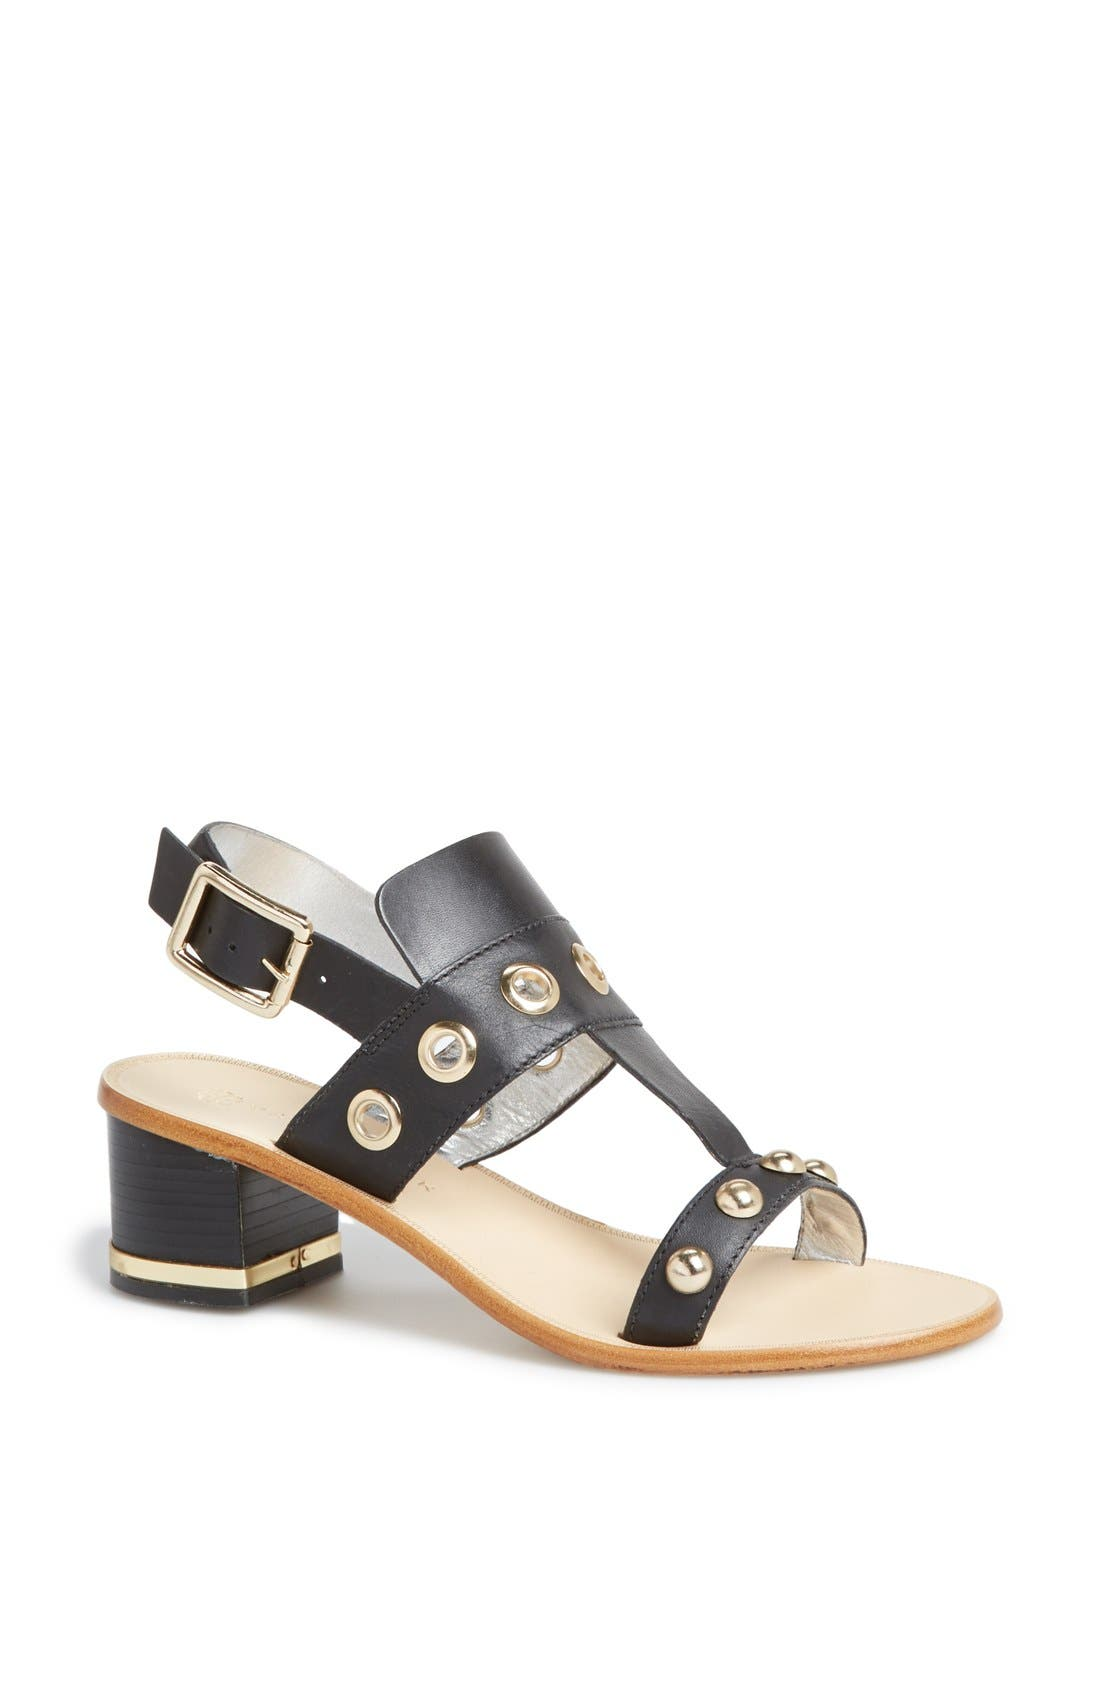 Alternate Image 1 Selected - Trina Turk 'Atwater' Studded Slingback Sandal